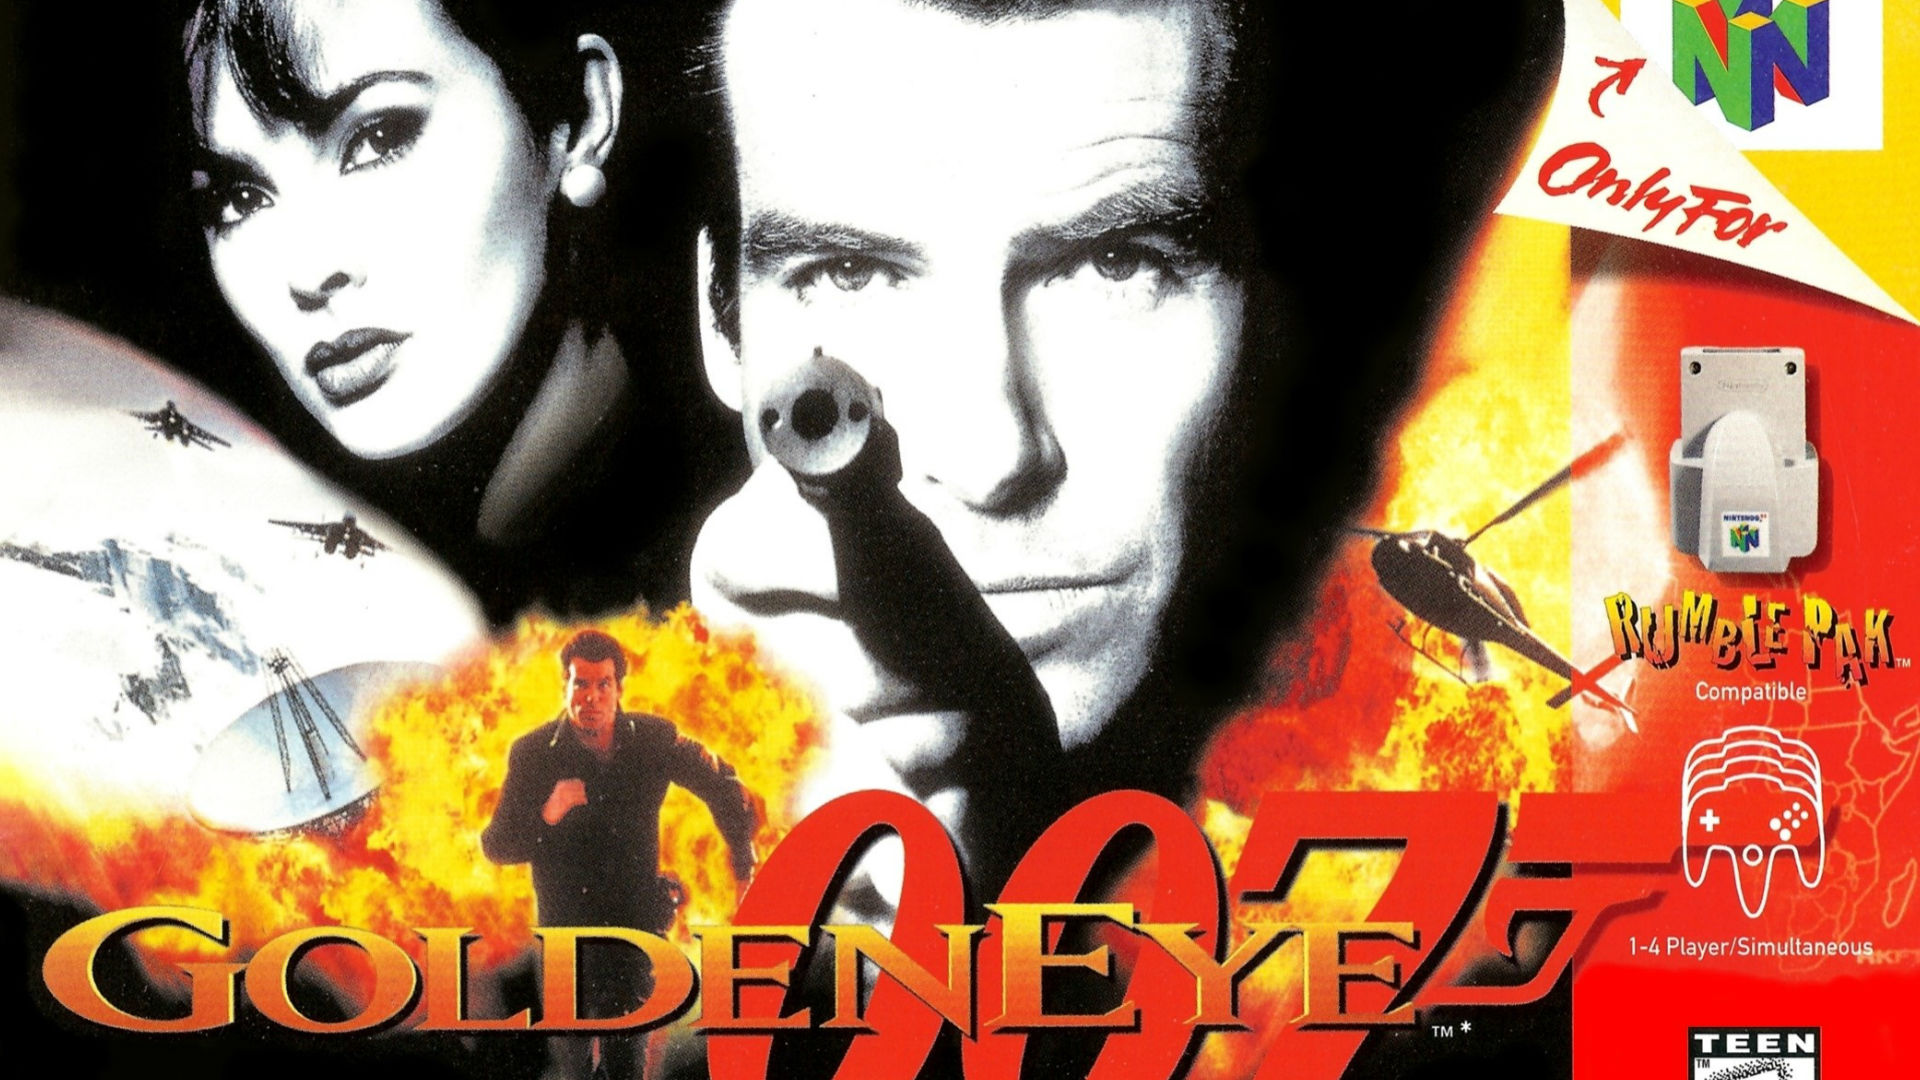 GoldenEye Nintendo 64 video games